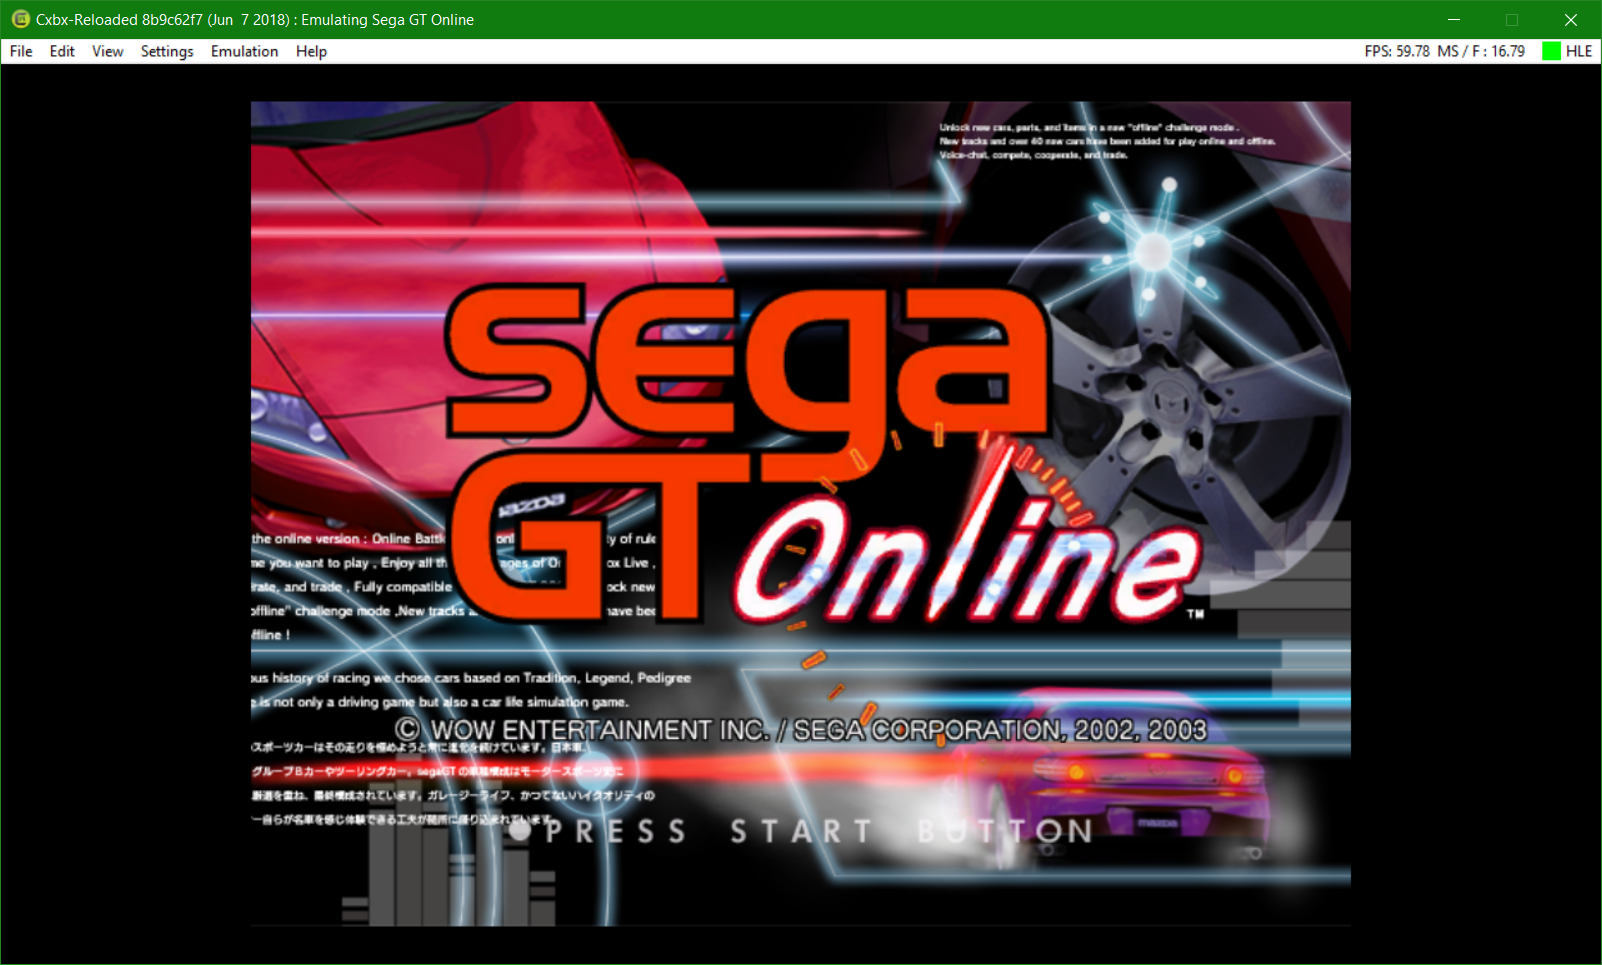 Sega GT Online [53450021] · Issue #789 · Cxbx-Reloaded/game